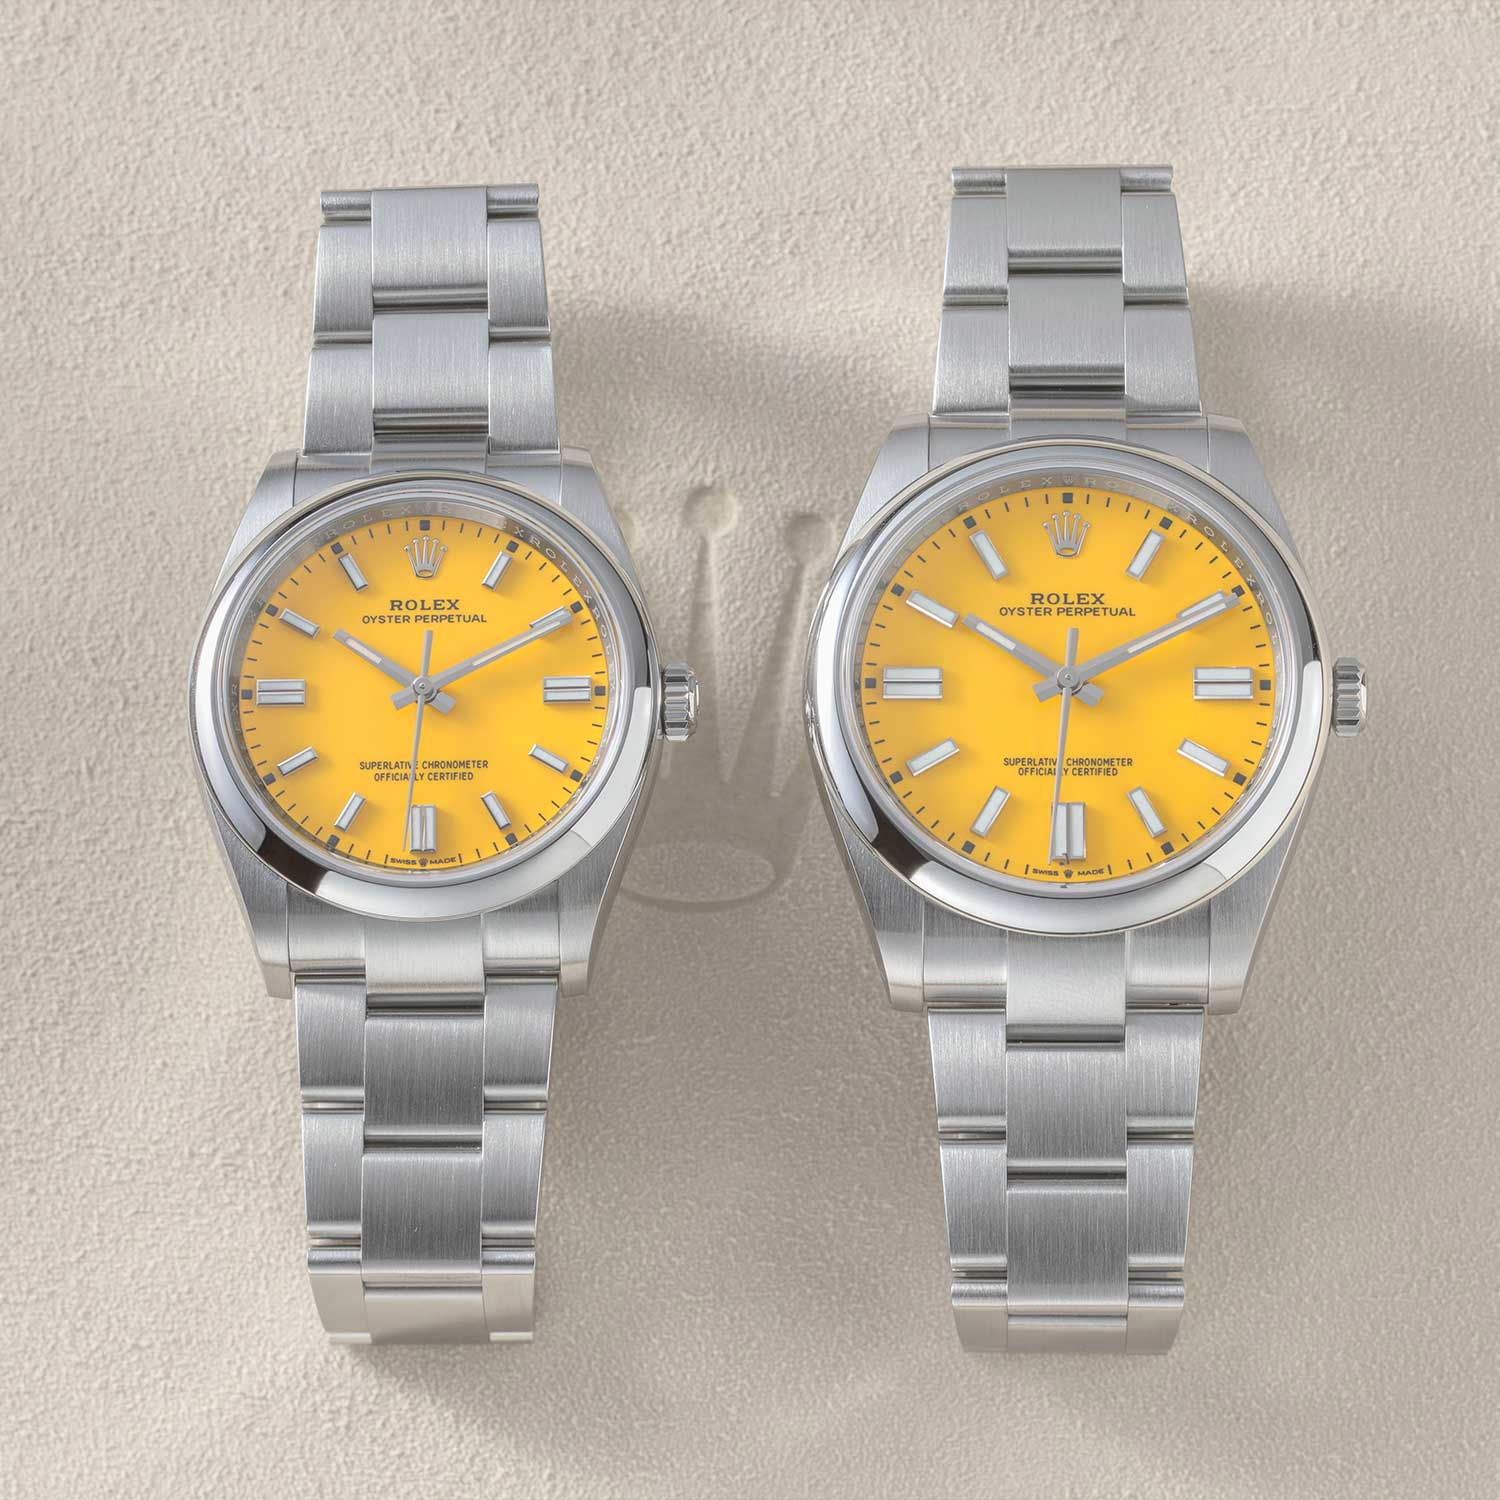 The 36mm and 41mm sizes of the 2020 Rolex Oyster Perpetual side-by-side, seen here with the yellow dial (©Revolution)